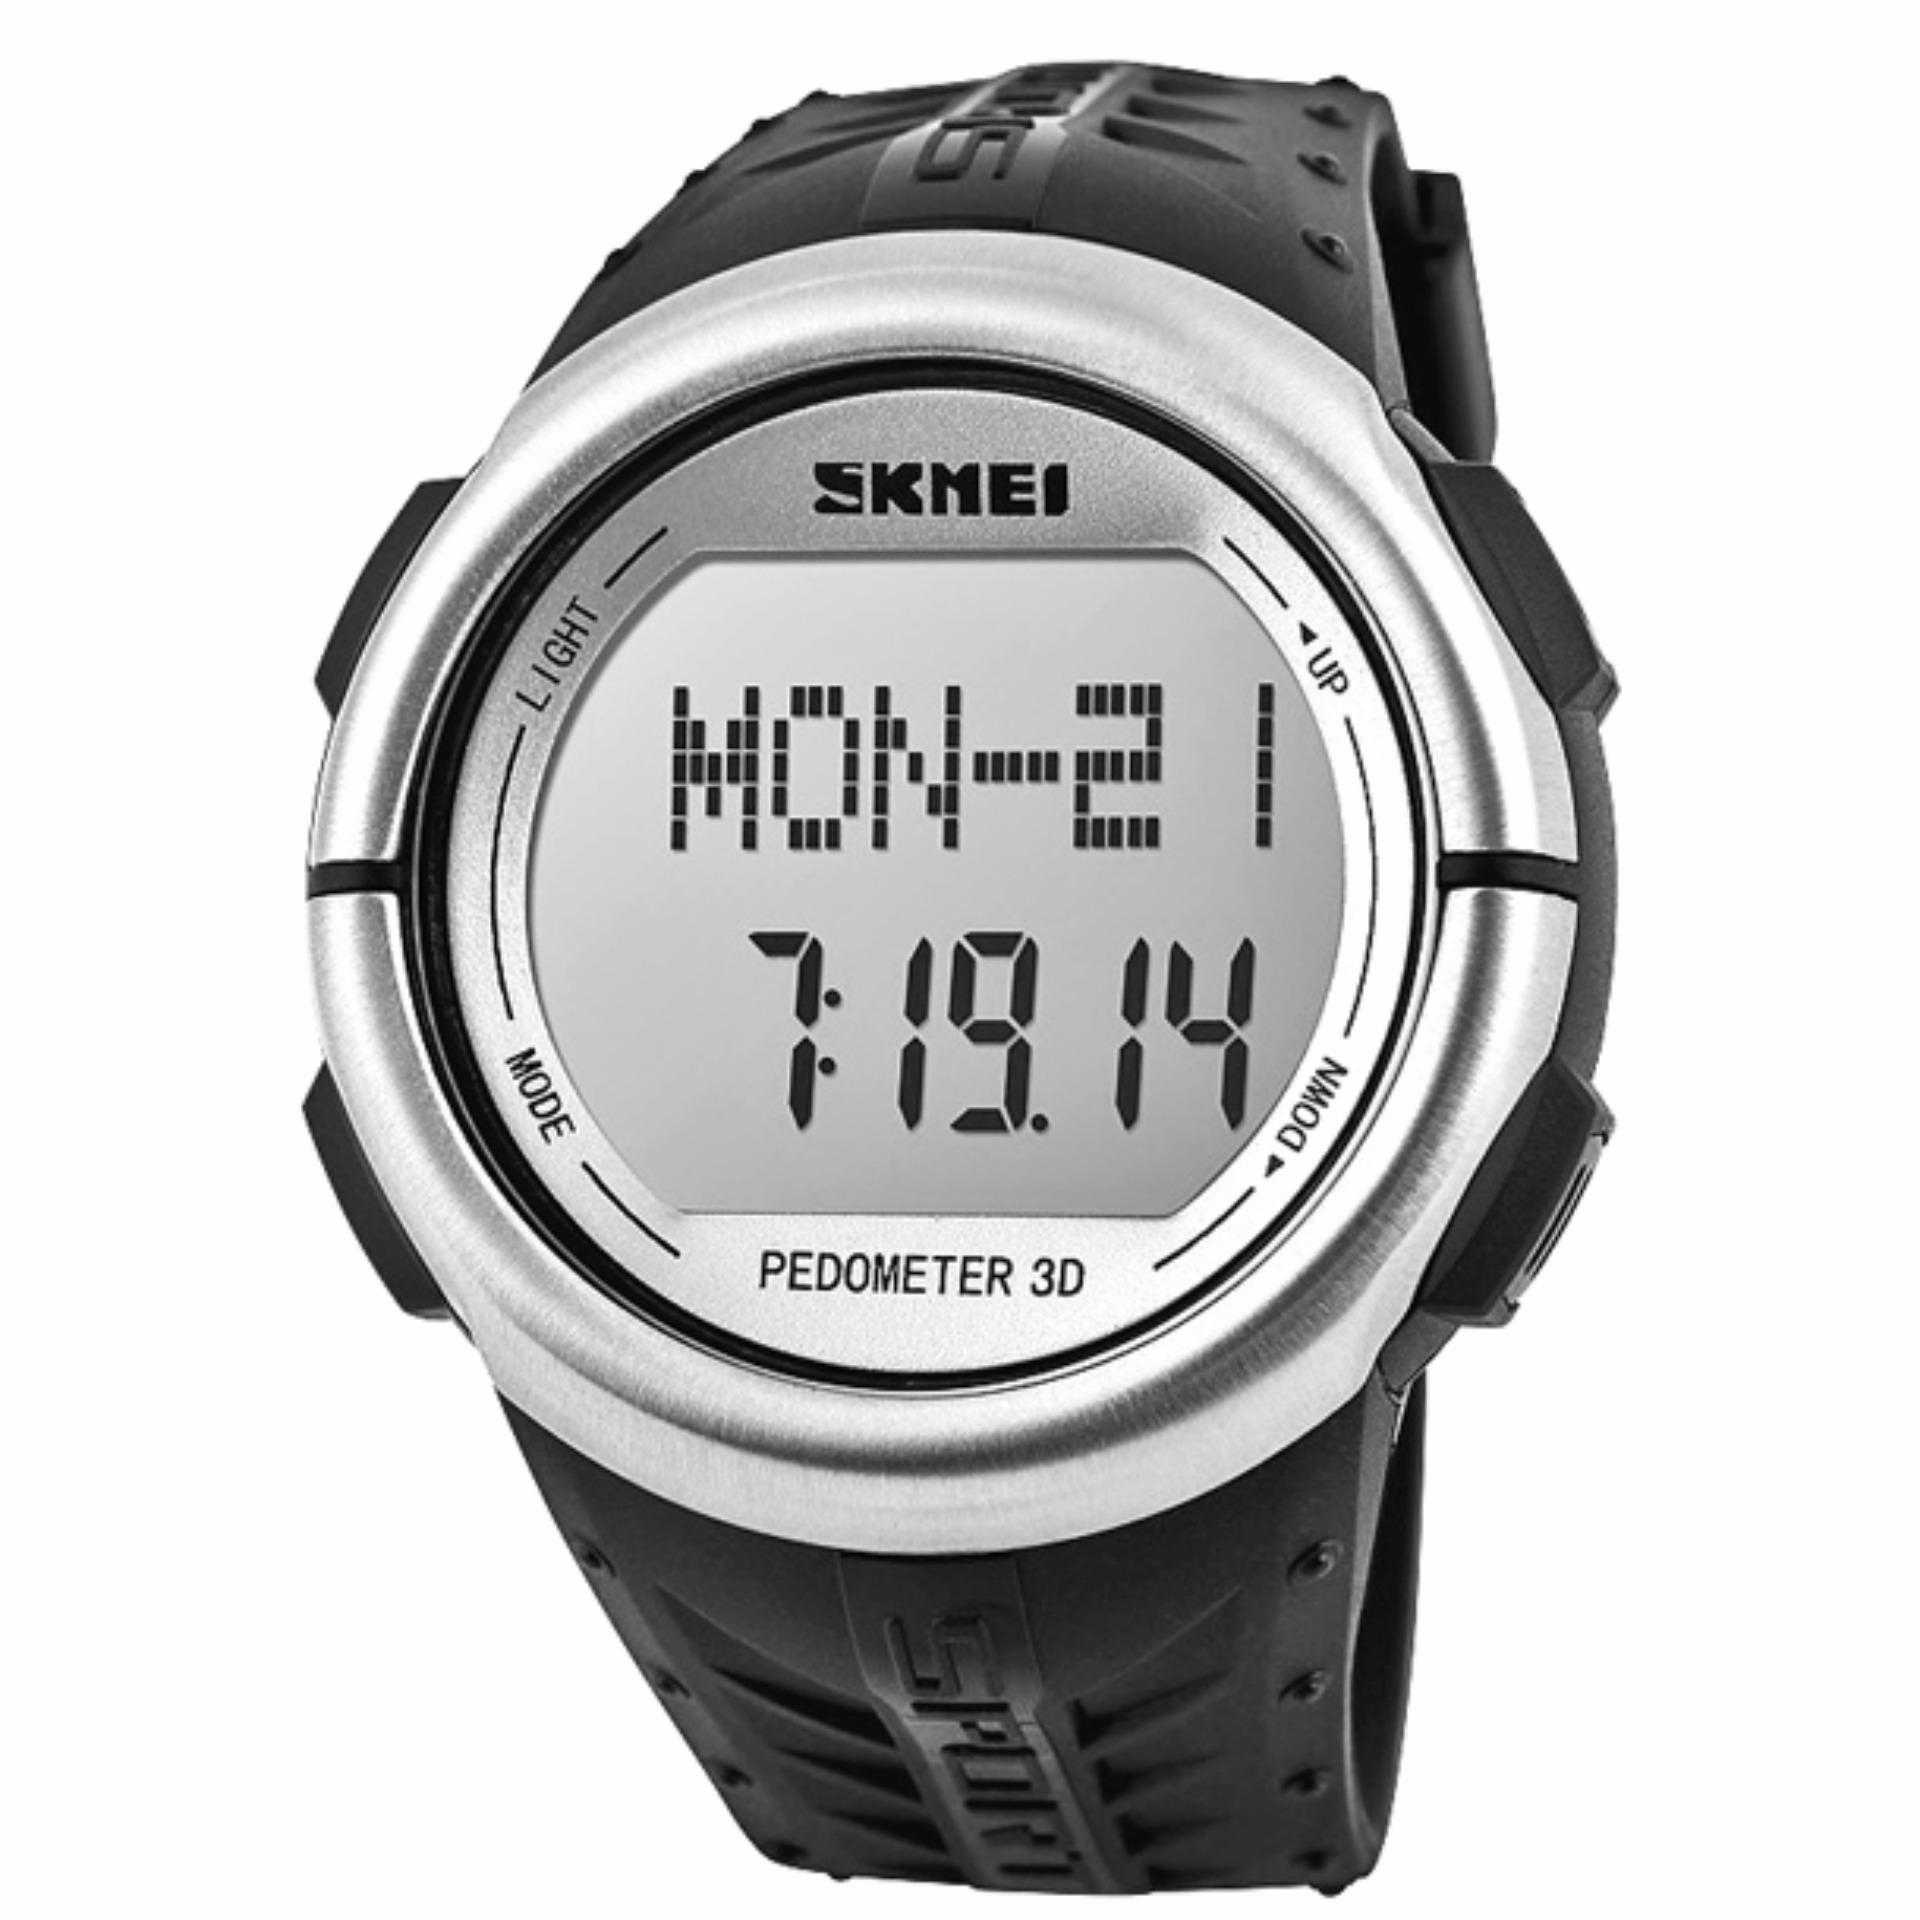 Spesifikasi Skmei Sport Watch Pedometer Heart Rate Tracking Water Resistant Day Date Stopwatch Pedometer Dg1058Hr Abu Terbaik